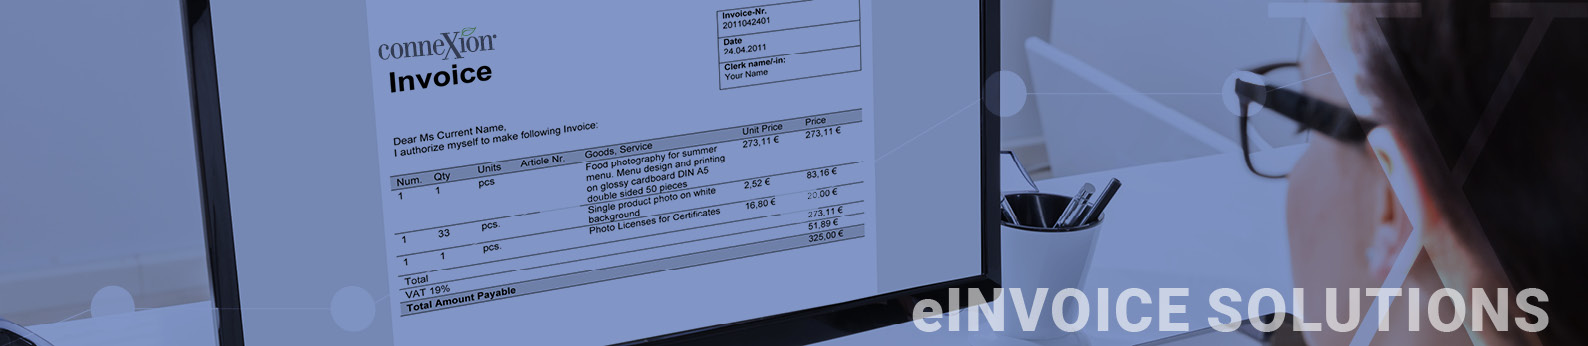 Connexion electronic invoice solutions